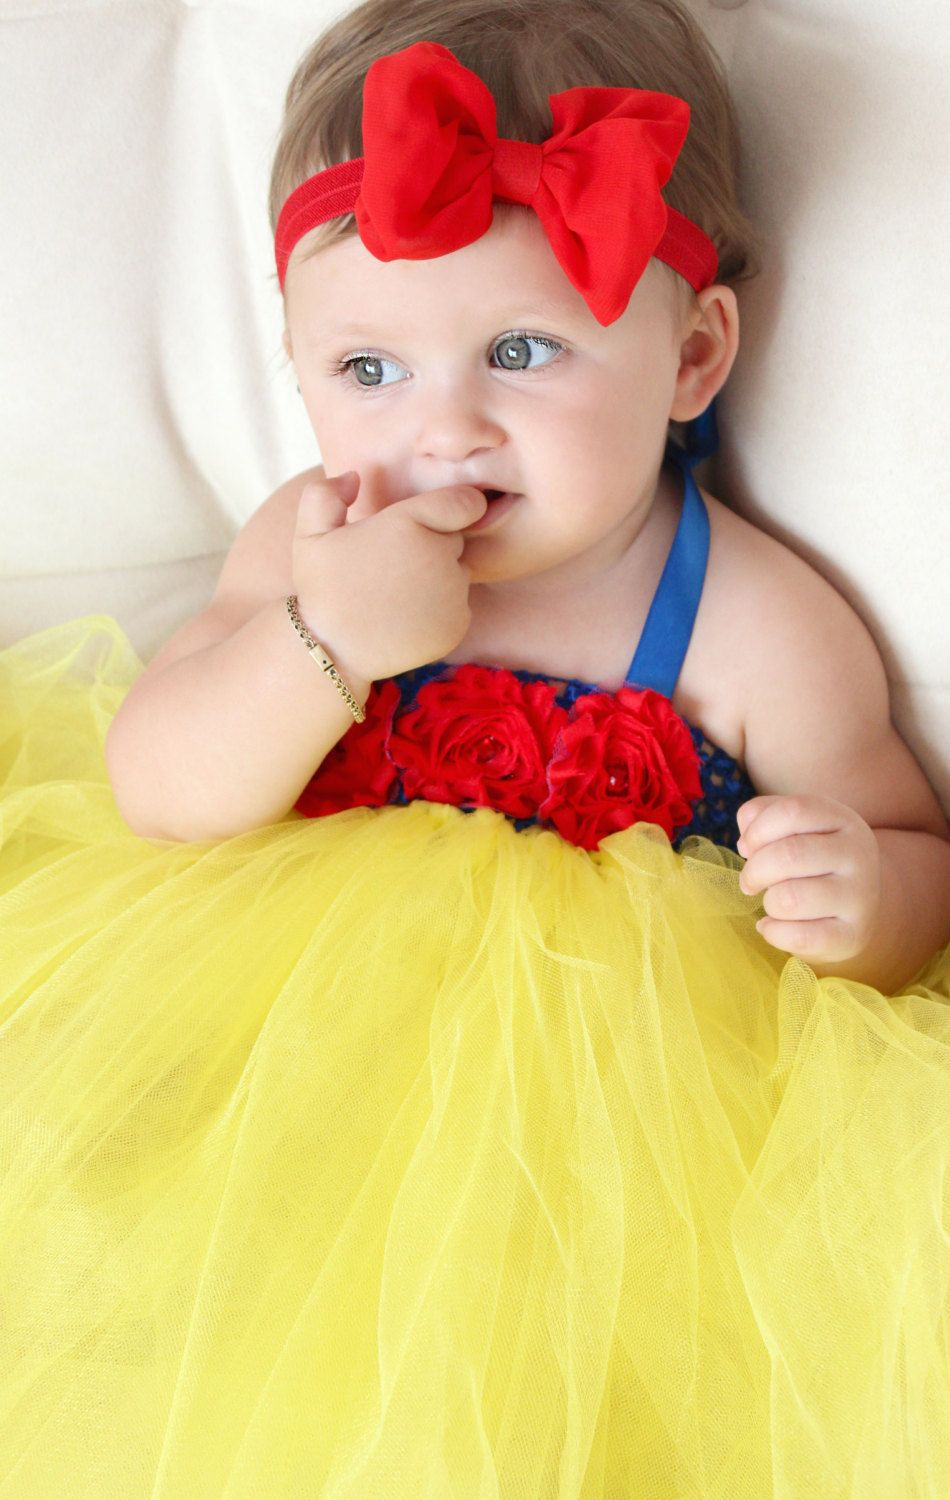 Beautiful Snow White Tutu Dress Costume with Red Hair Bow for Baby ...